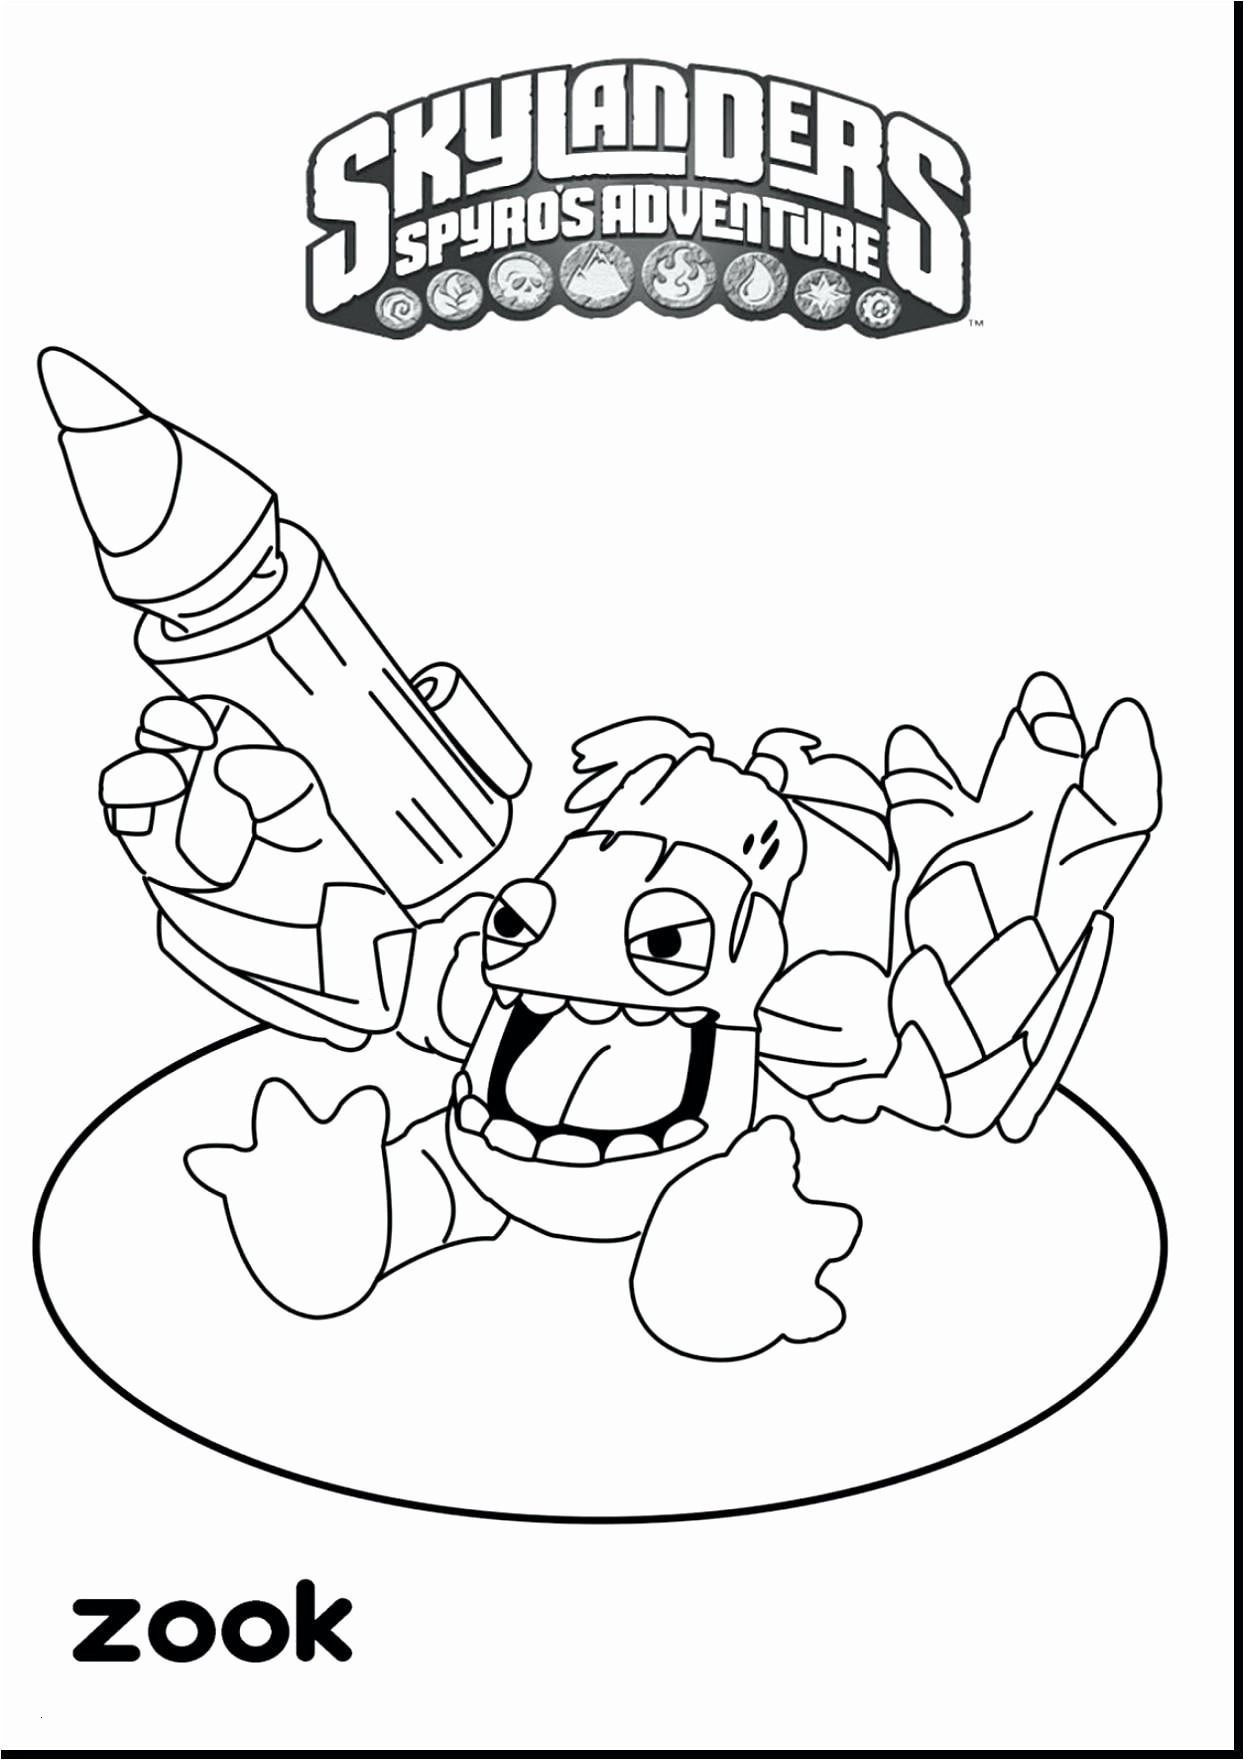 anti bullying coloring pages Download-First Day Spring Coloring Pages 30 New Pre K Coloring Sheets Cloud9vegas 13-p